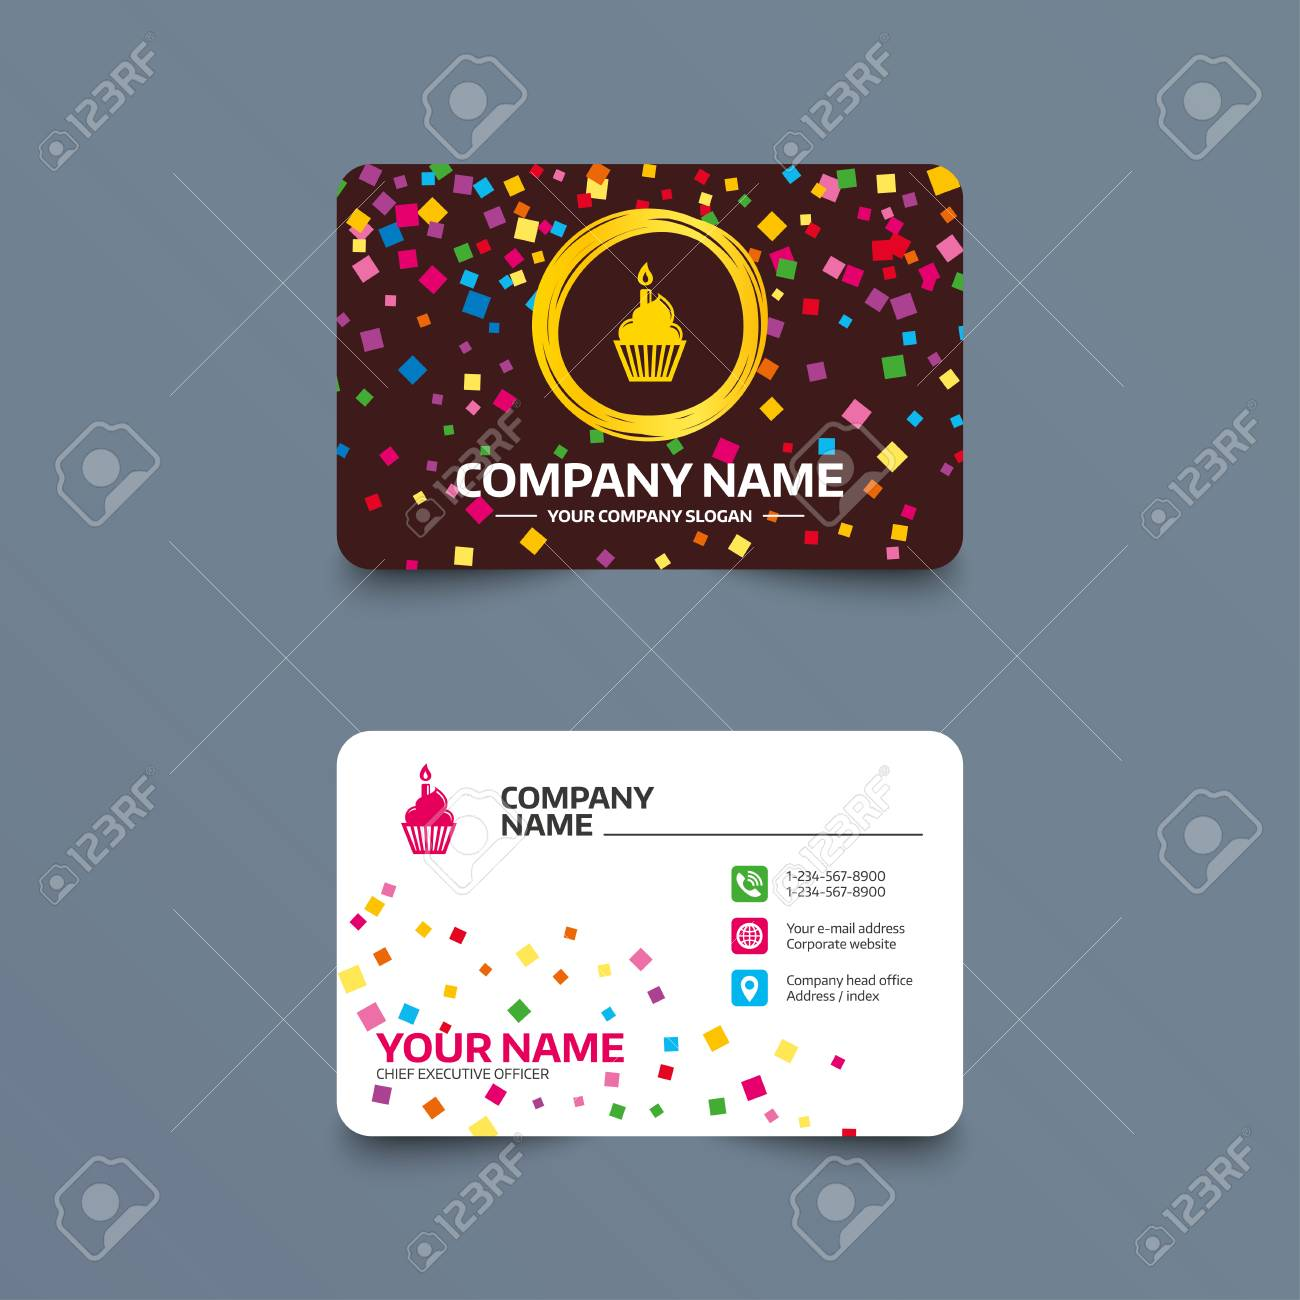 Business card template with confetti pieces birthday cake sign business card template with confetti pieces birthday cake sign icon cupcake with burning candle fbccfo Images